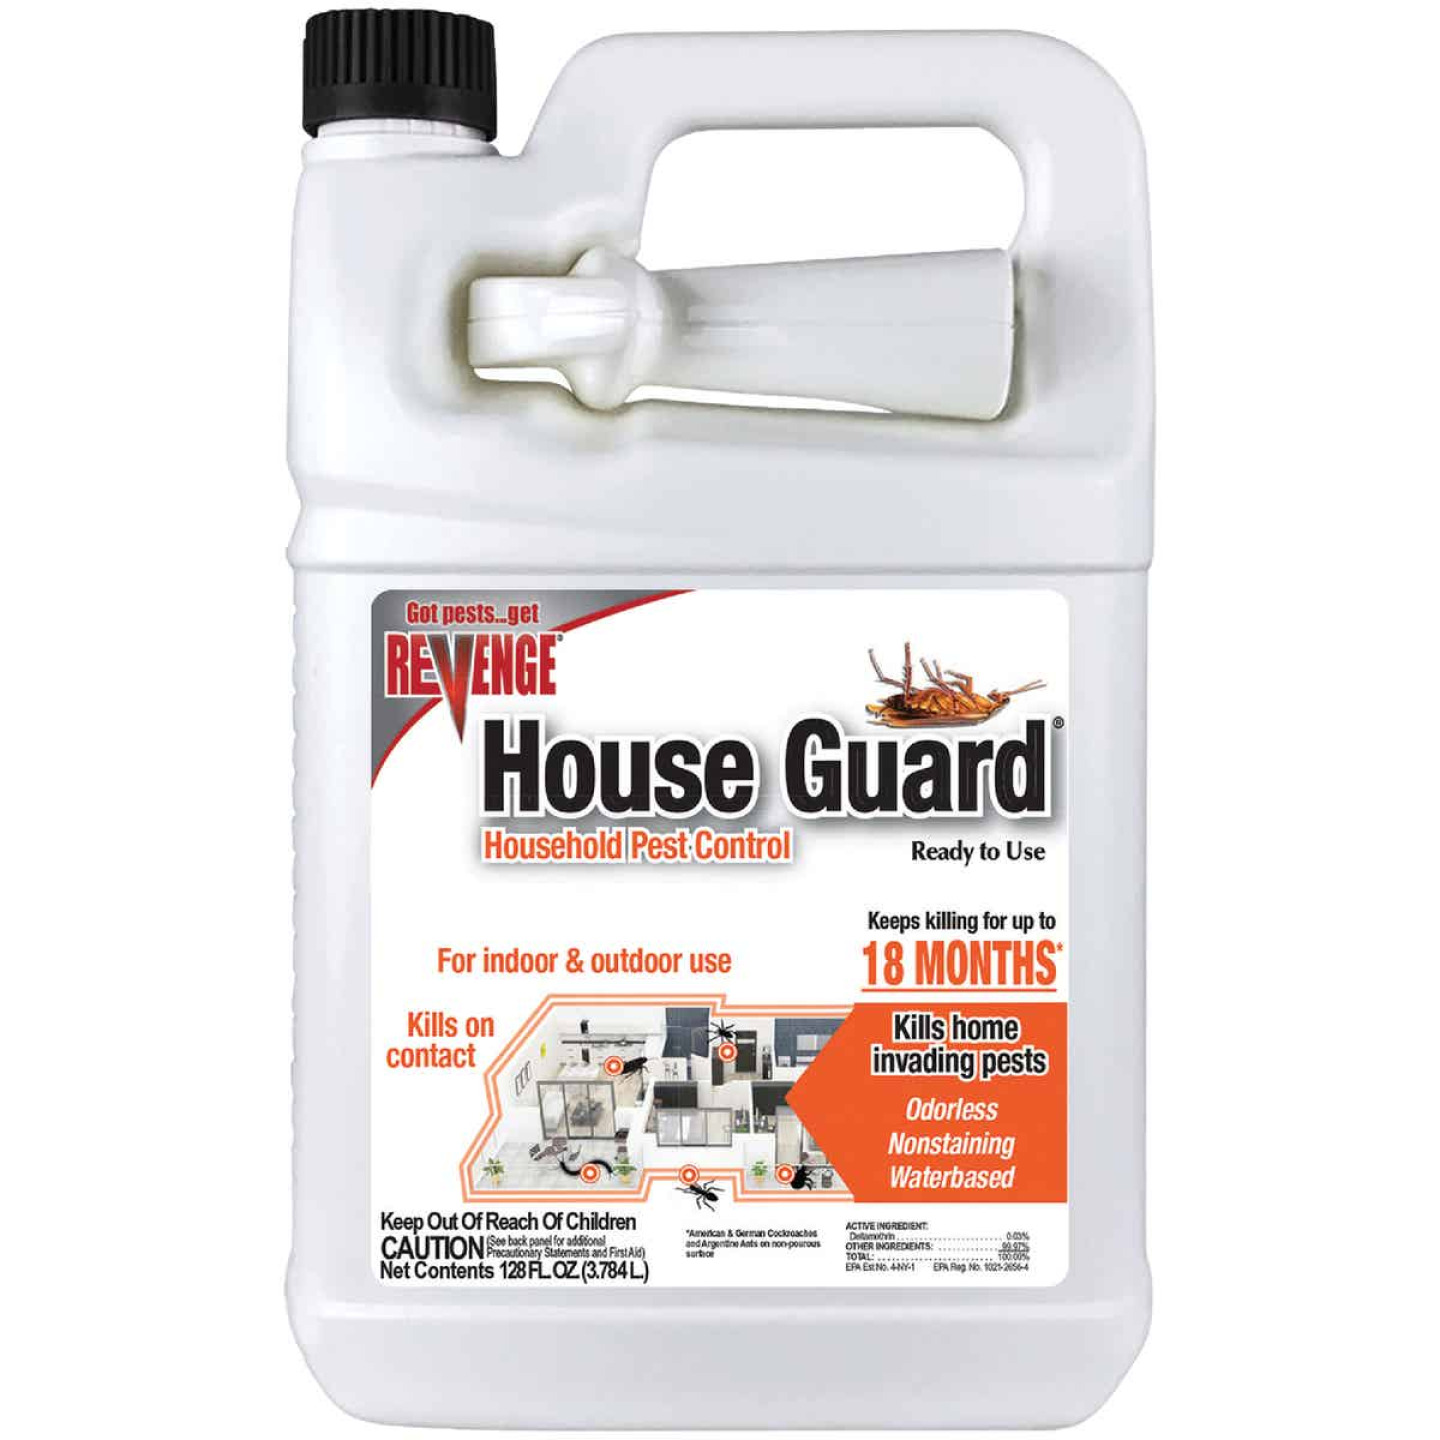 Bonide House Guard 1 Gal. Ready To Use Trigger Spray Insect Killer Image 1